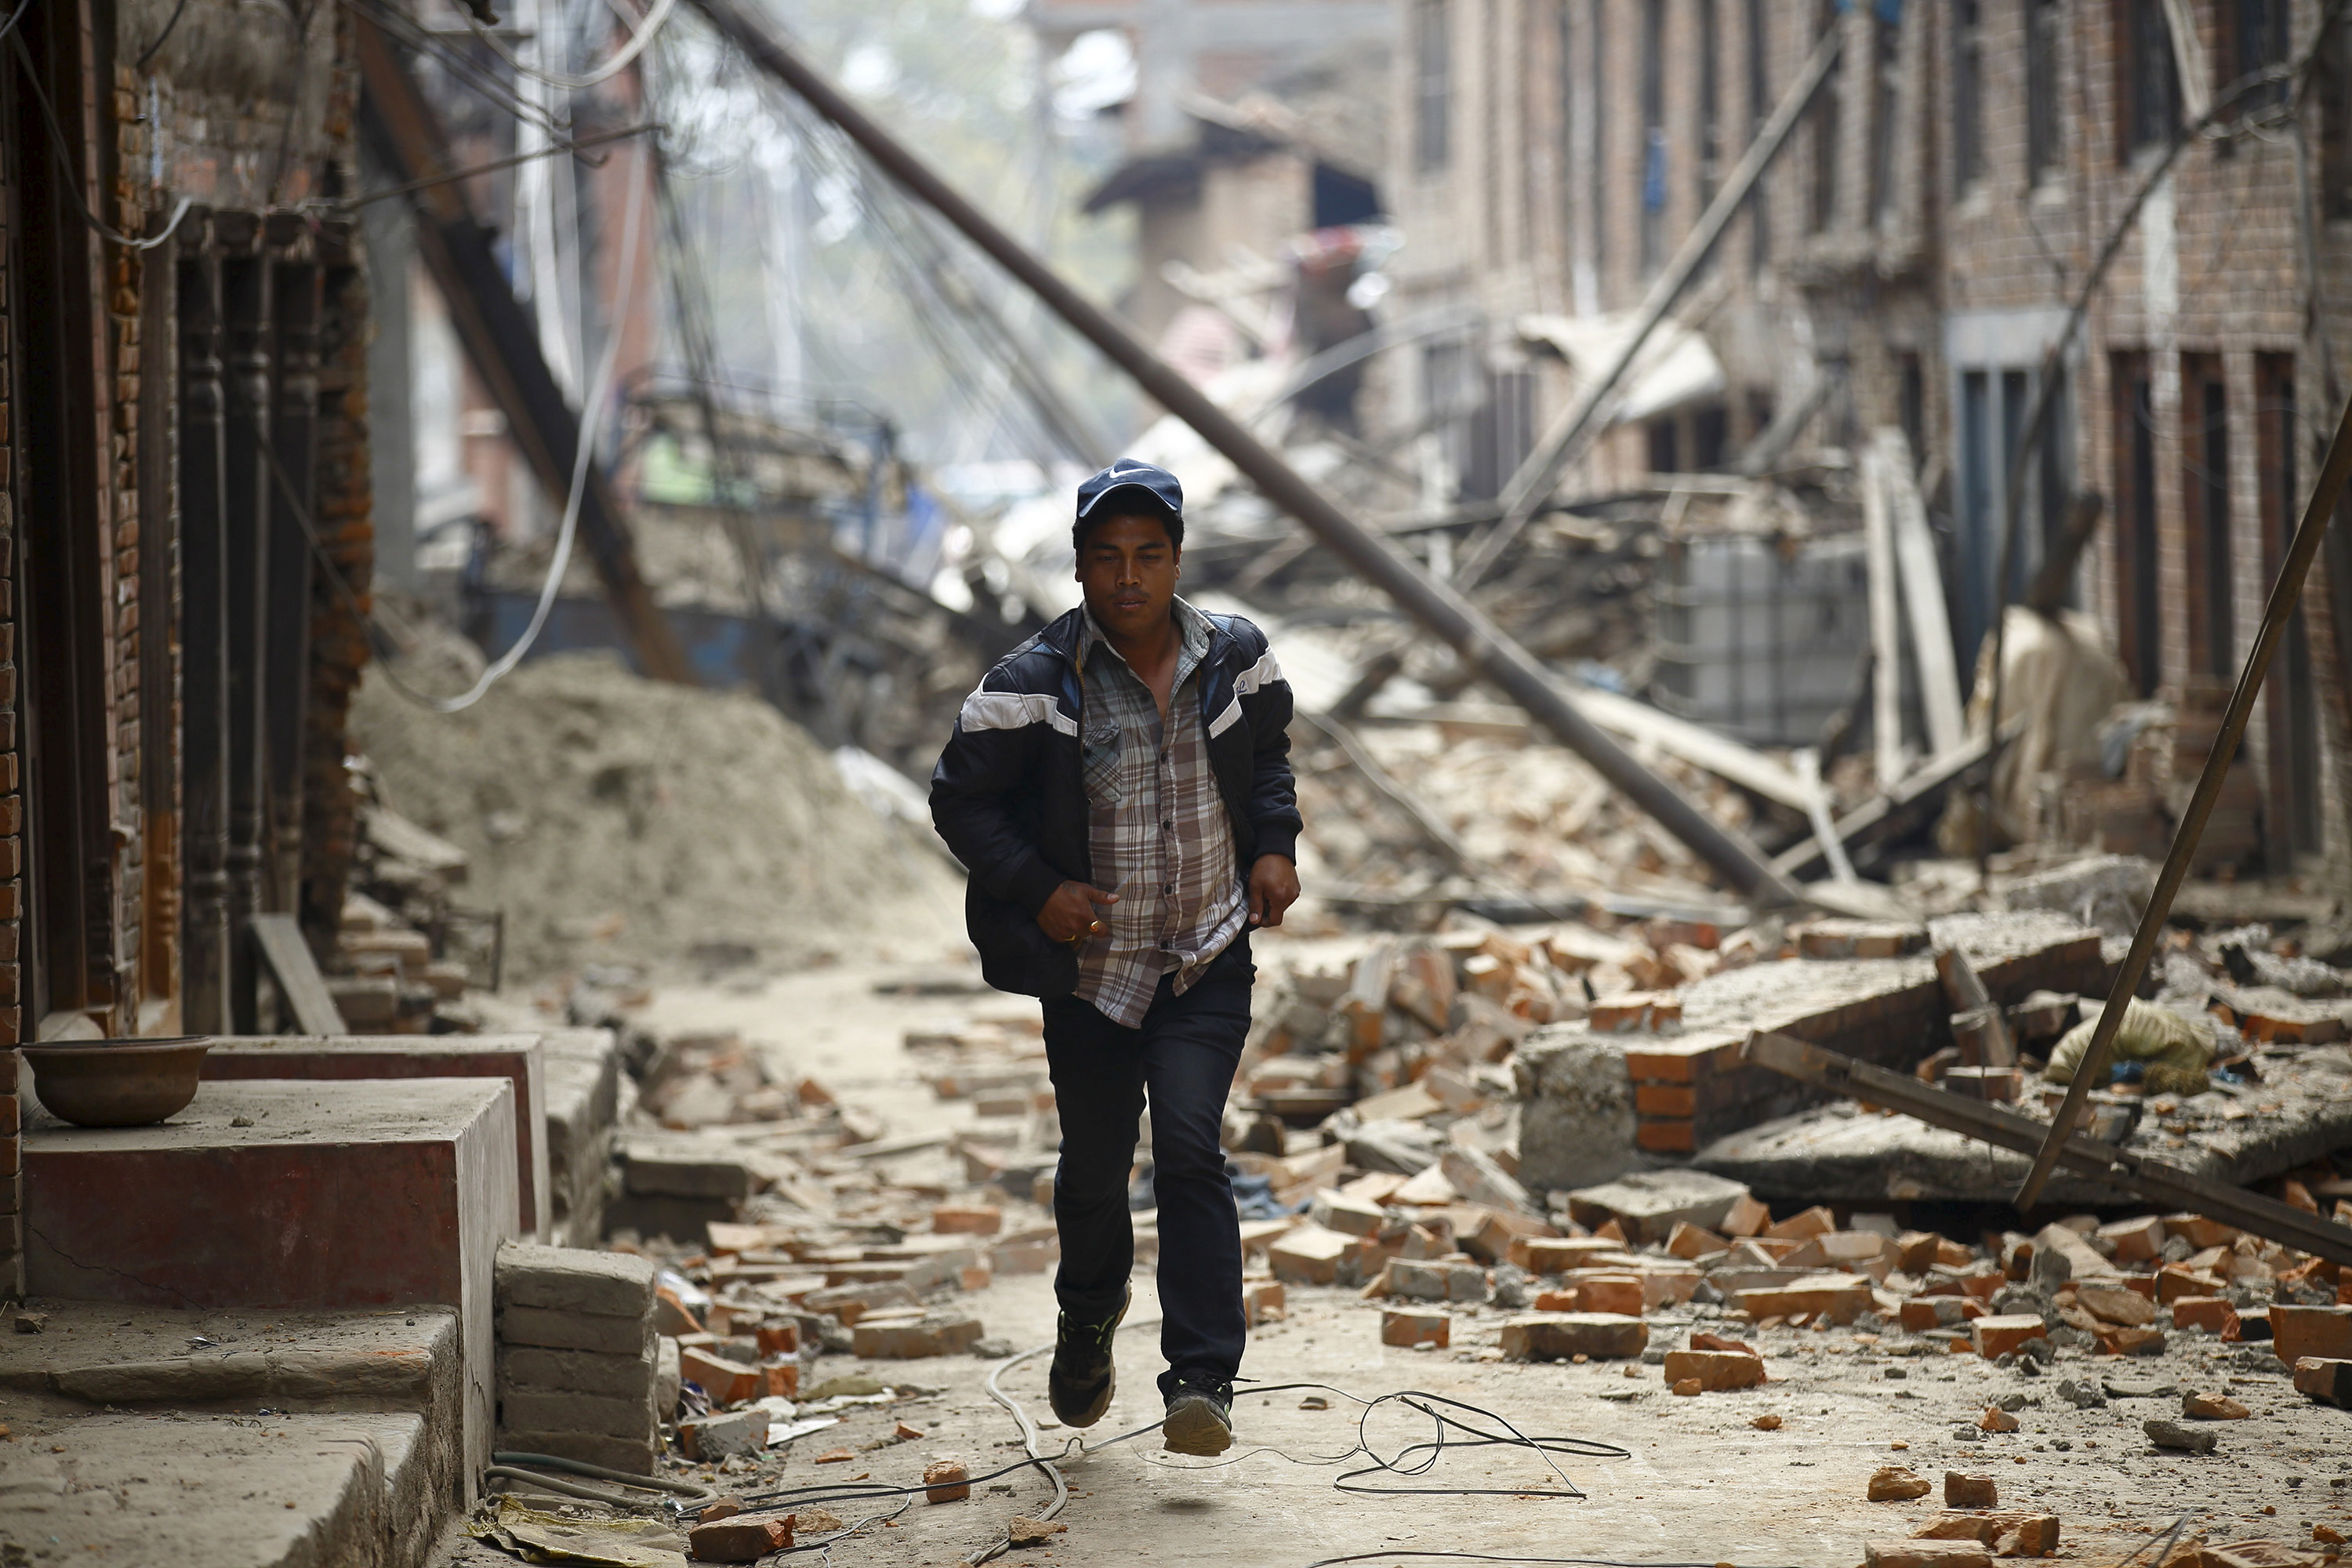 A man runs past damaged houses as aftershocks of an earthquake are felt a day after the earthquake in Bhaktapur, Nepal April 26, 2015. Photo by Navesh Chitrakar/REUTERS.